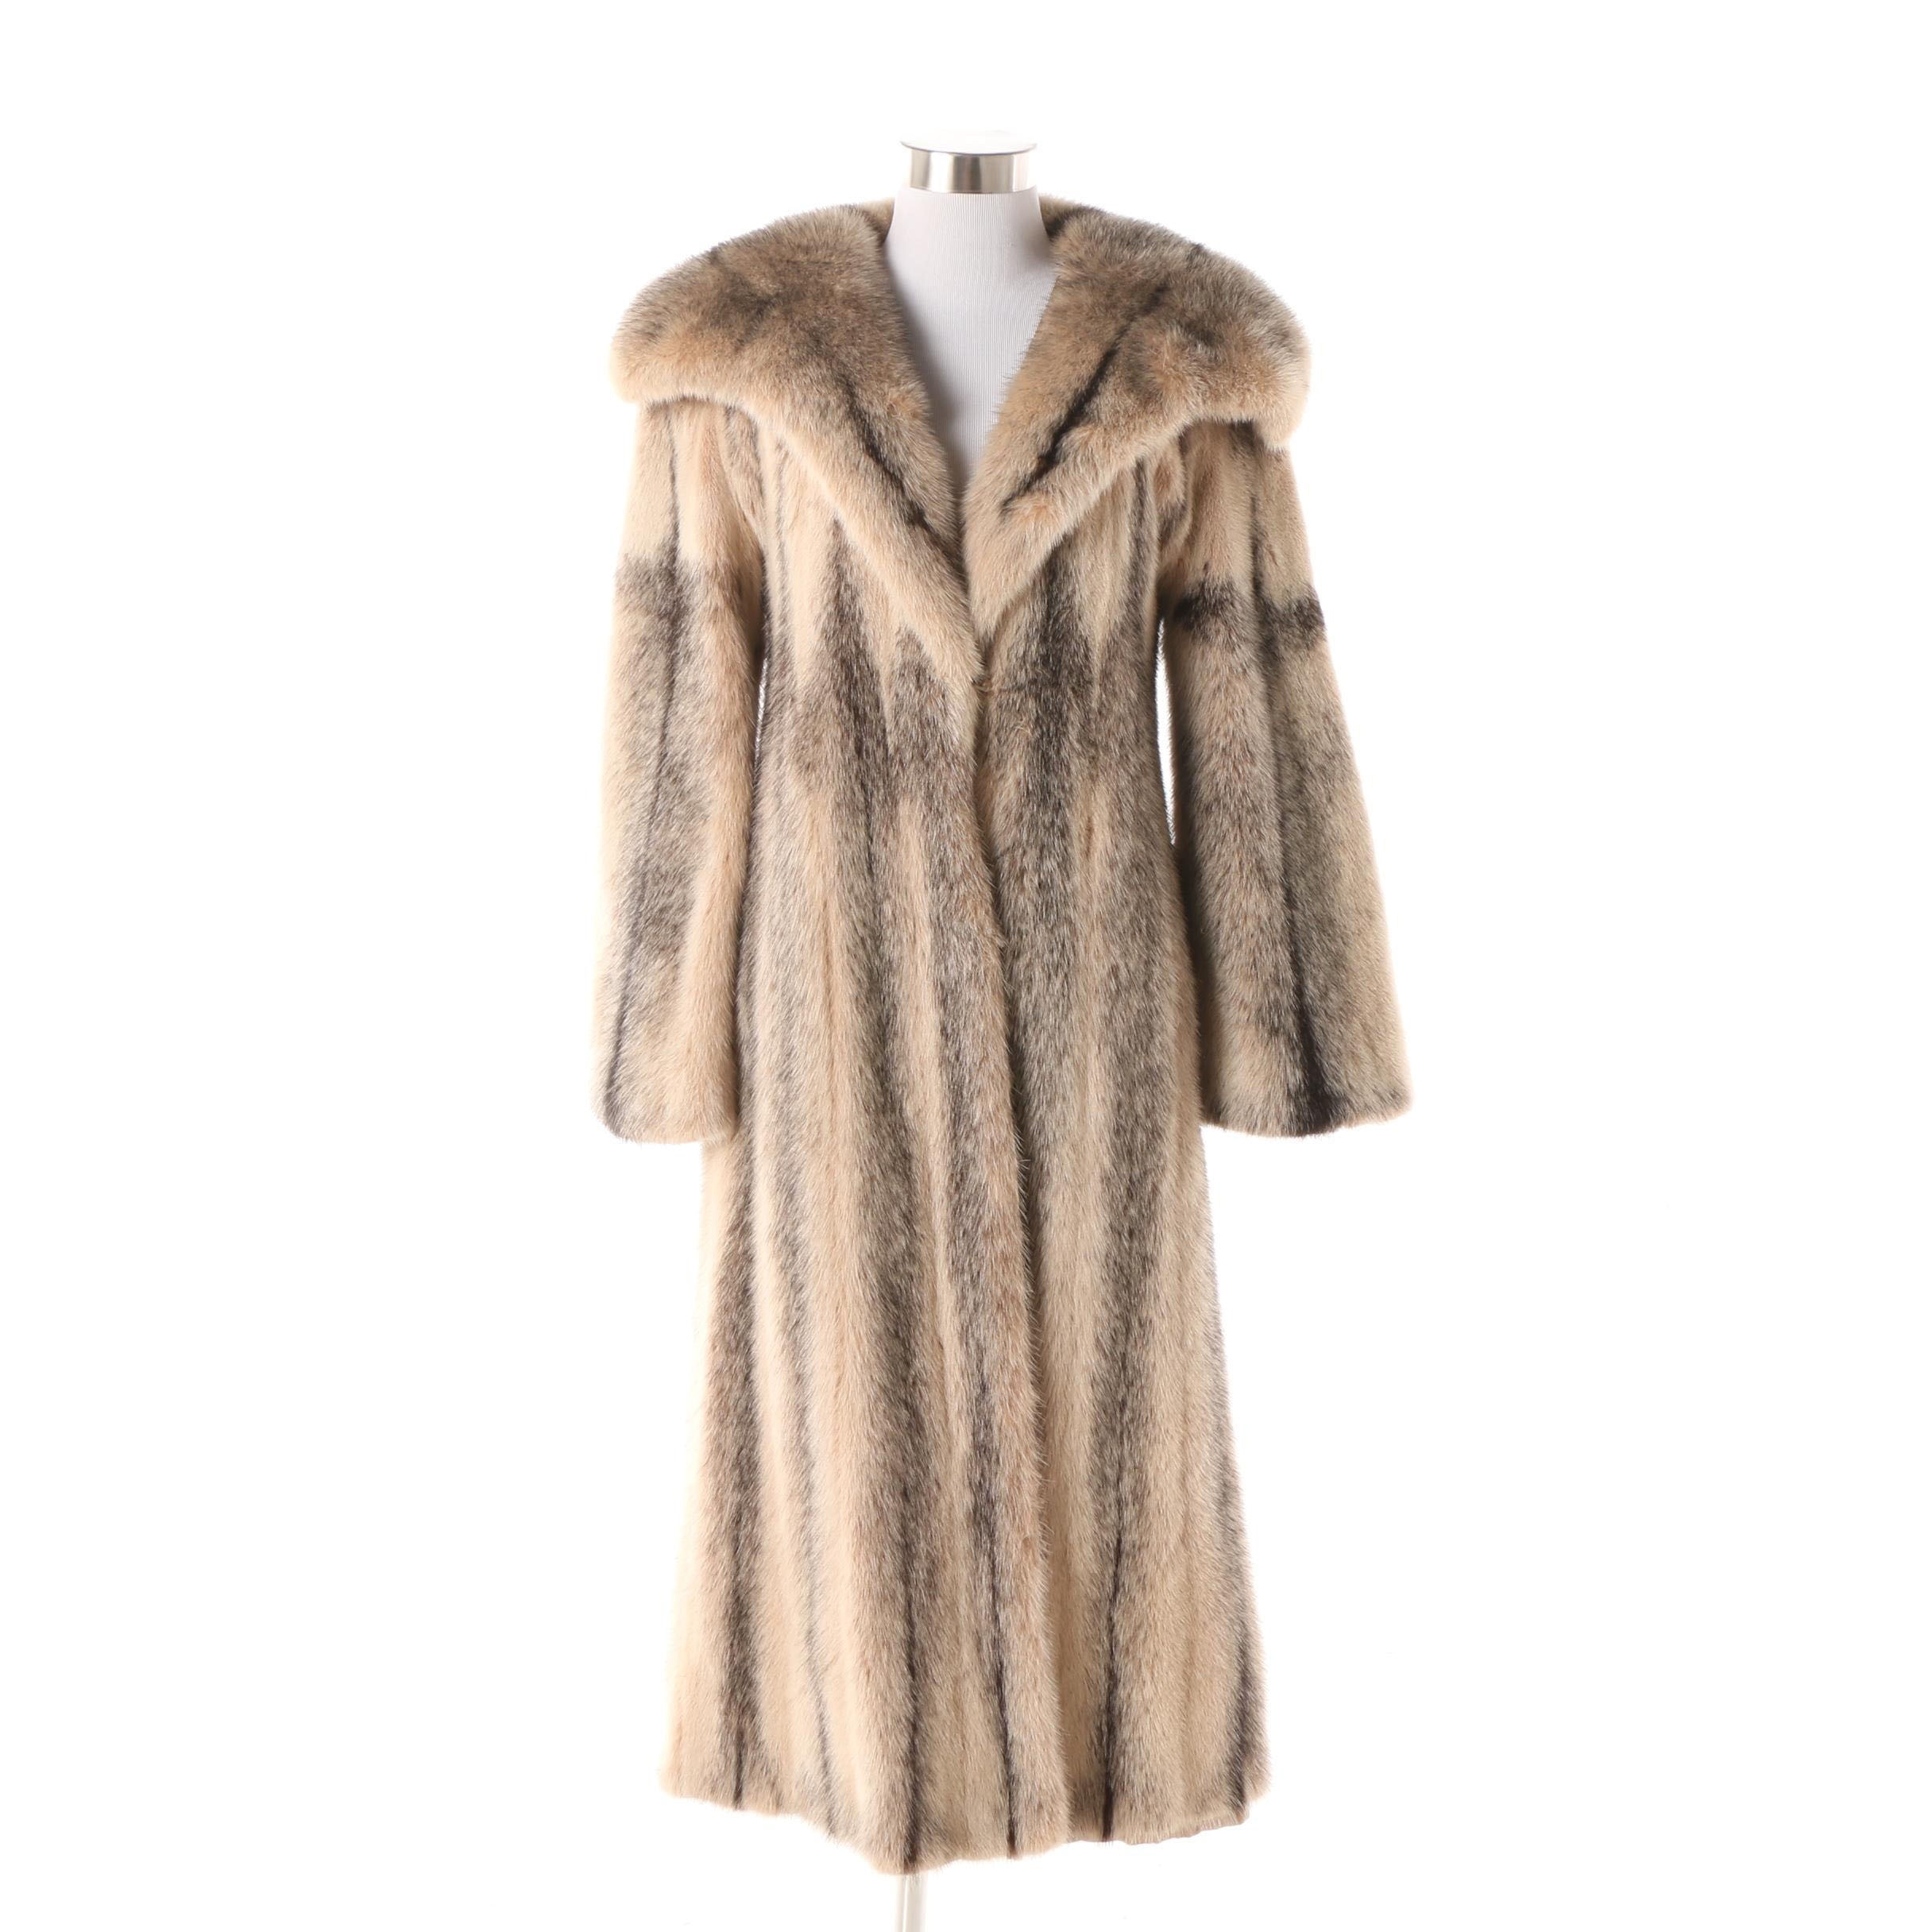 Women's Circa 1970s Vintage Fitch Fur Full-Length Coat